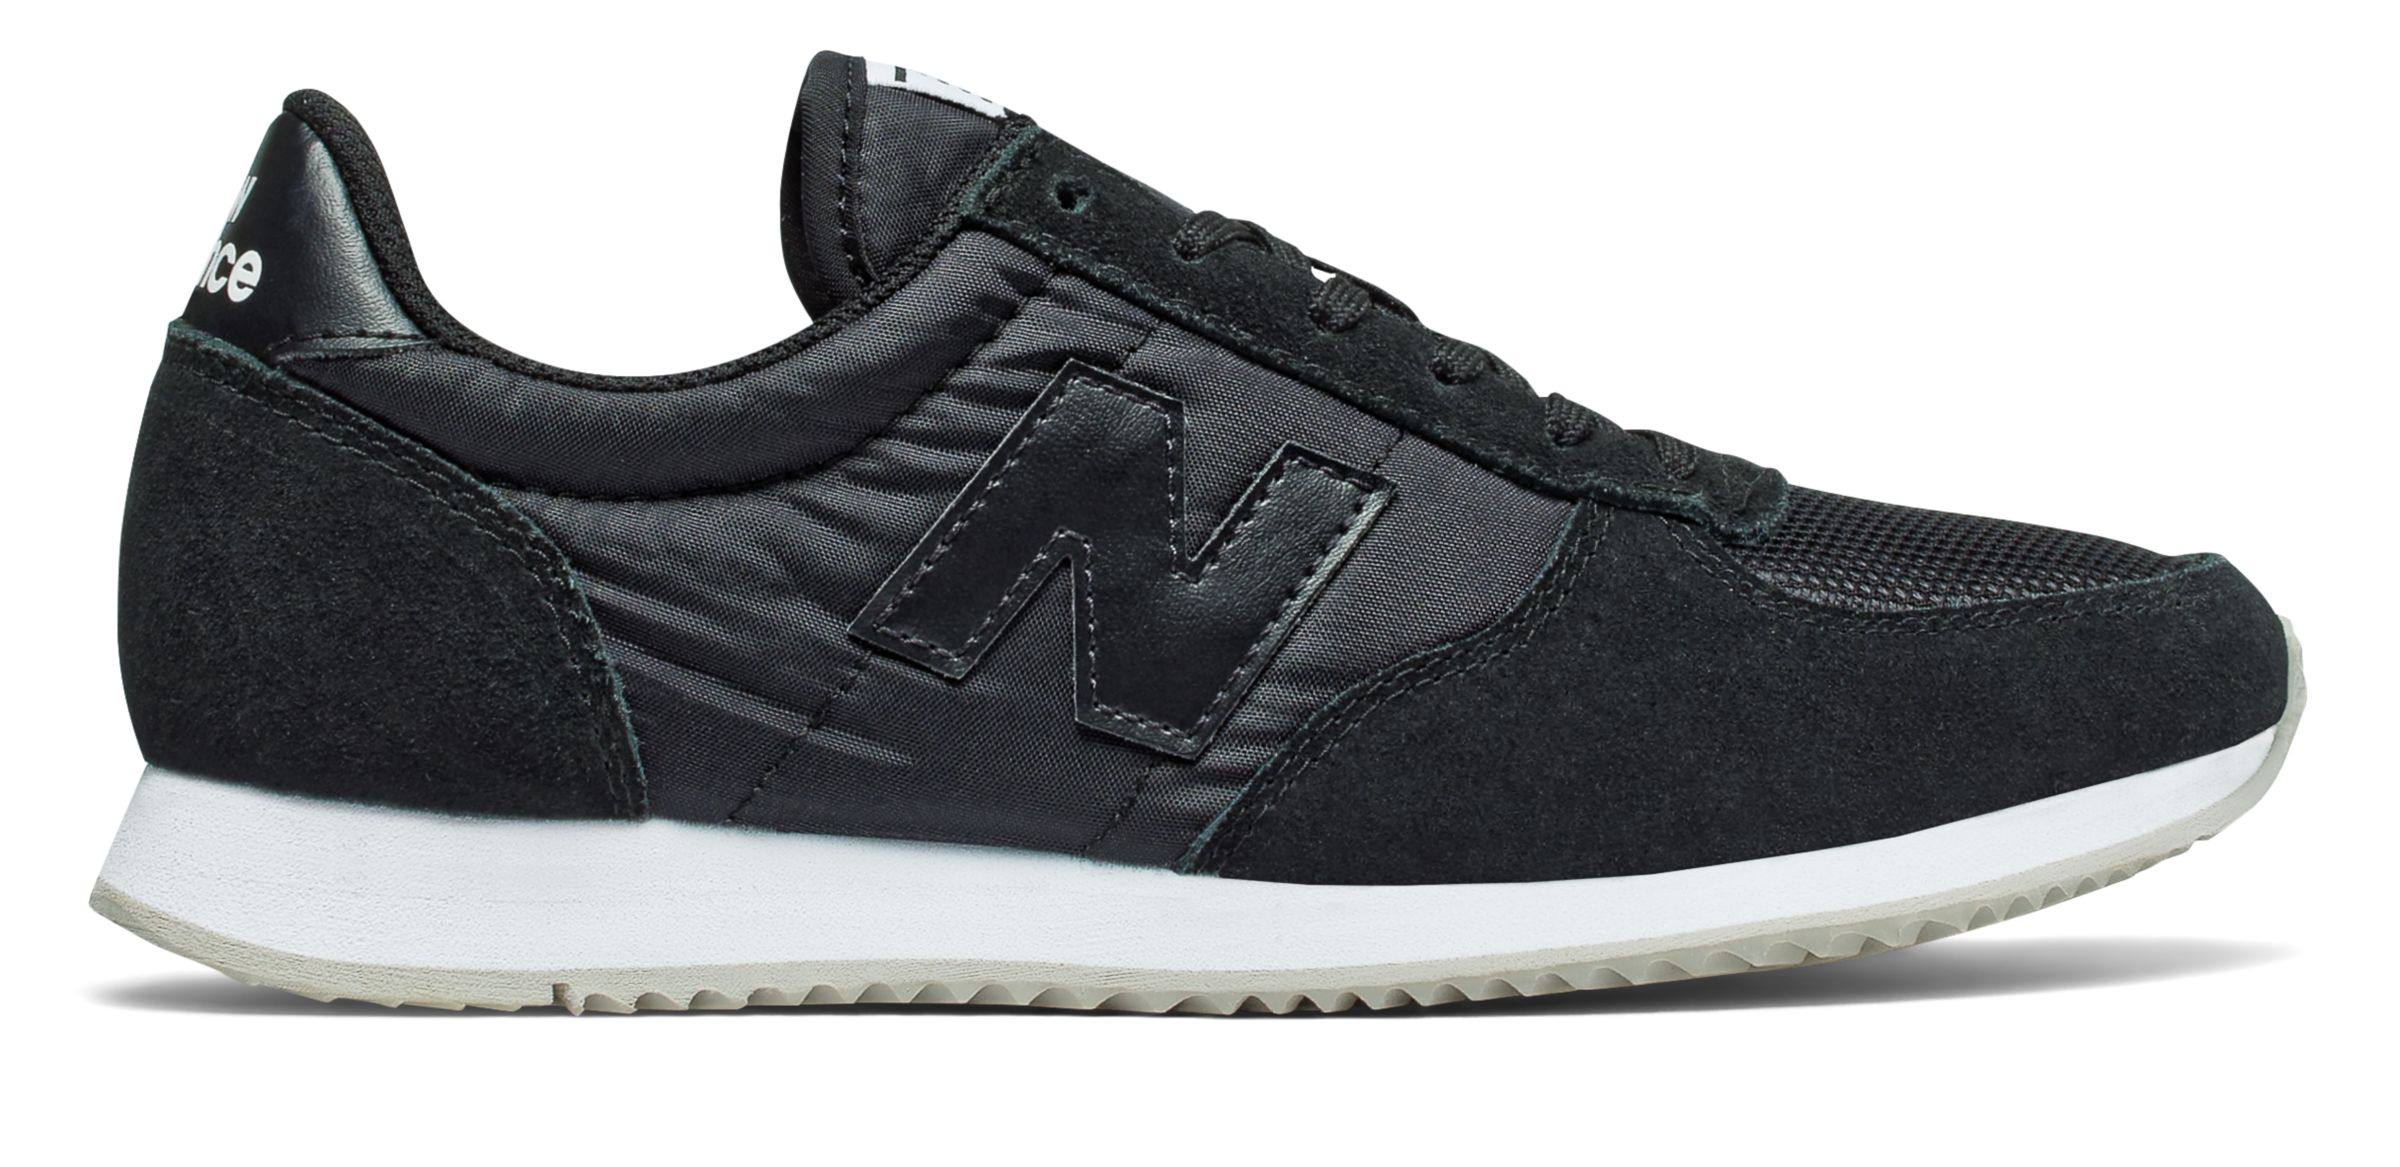 220 new balance in black